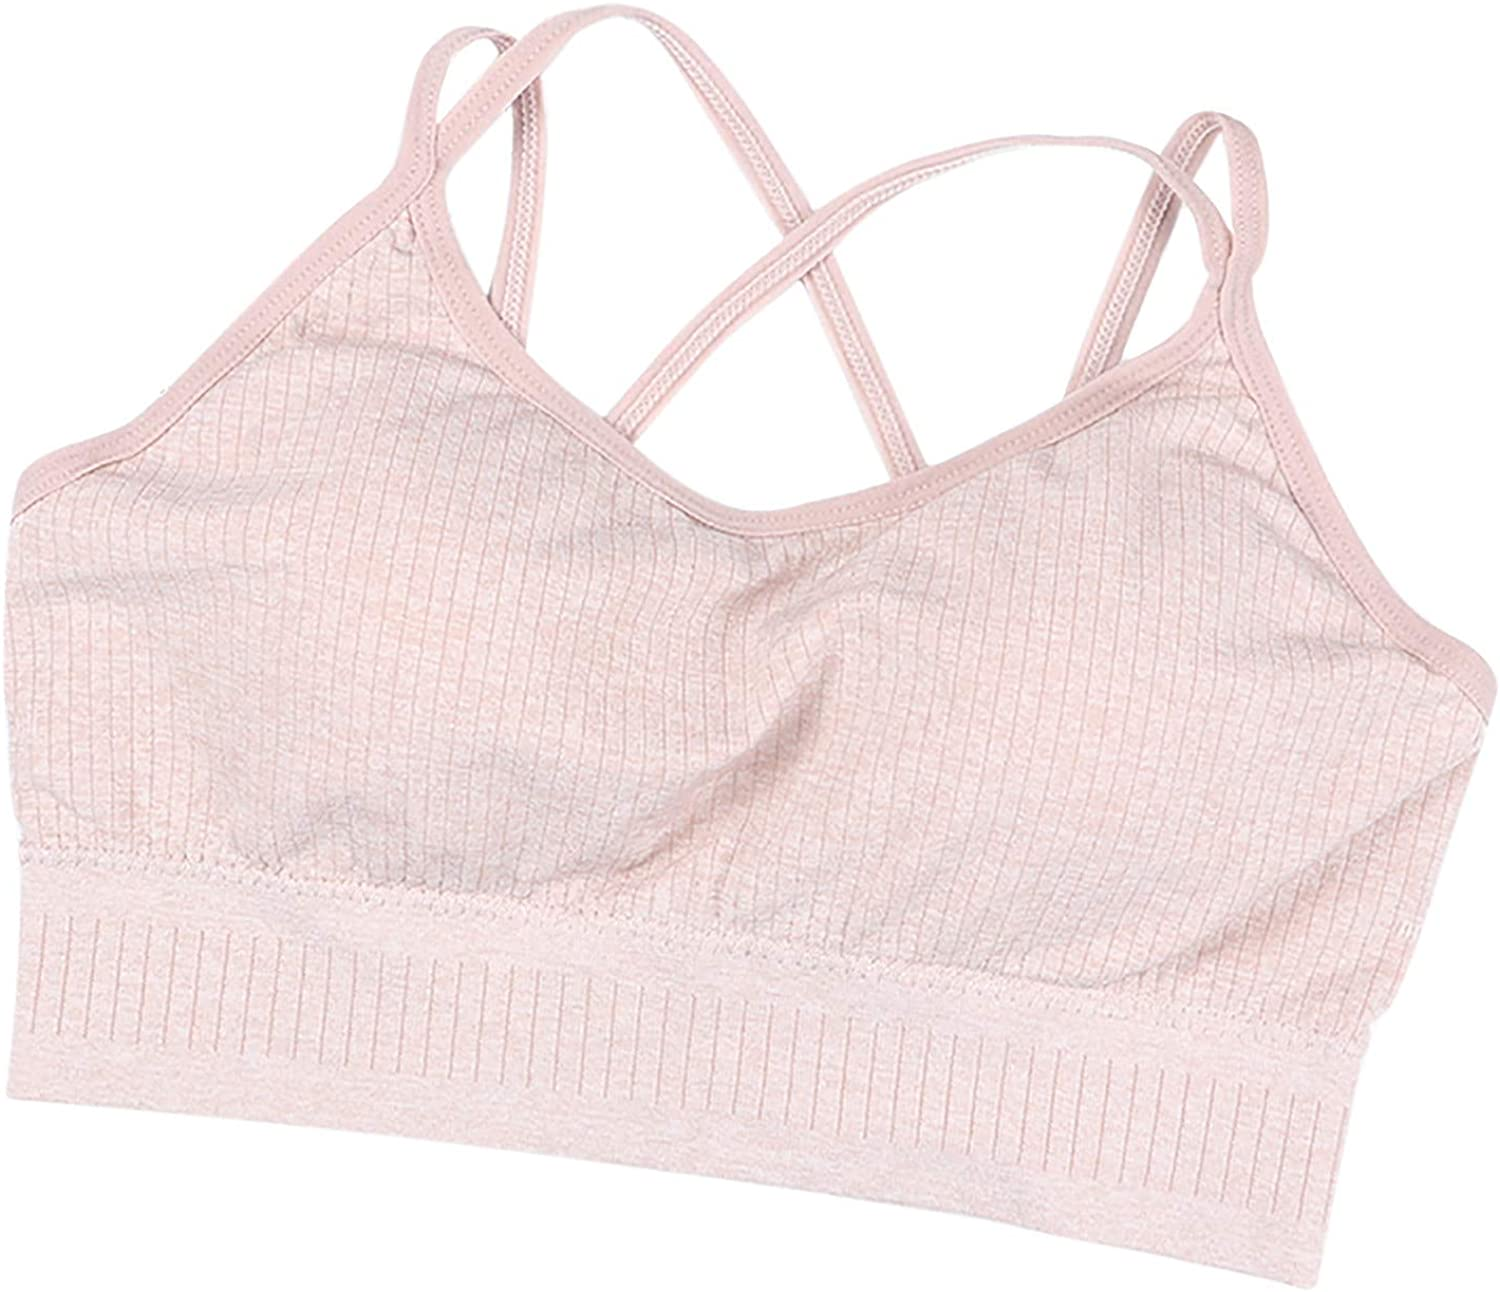 Maryia Women's Comfort Revolution Seamless Wire Free Bra Jogging Sports Smart Sizes Full Fit Vest Pink